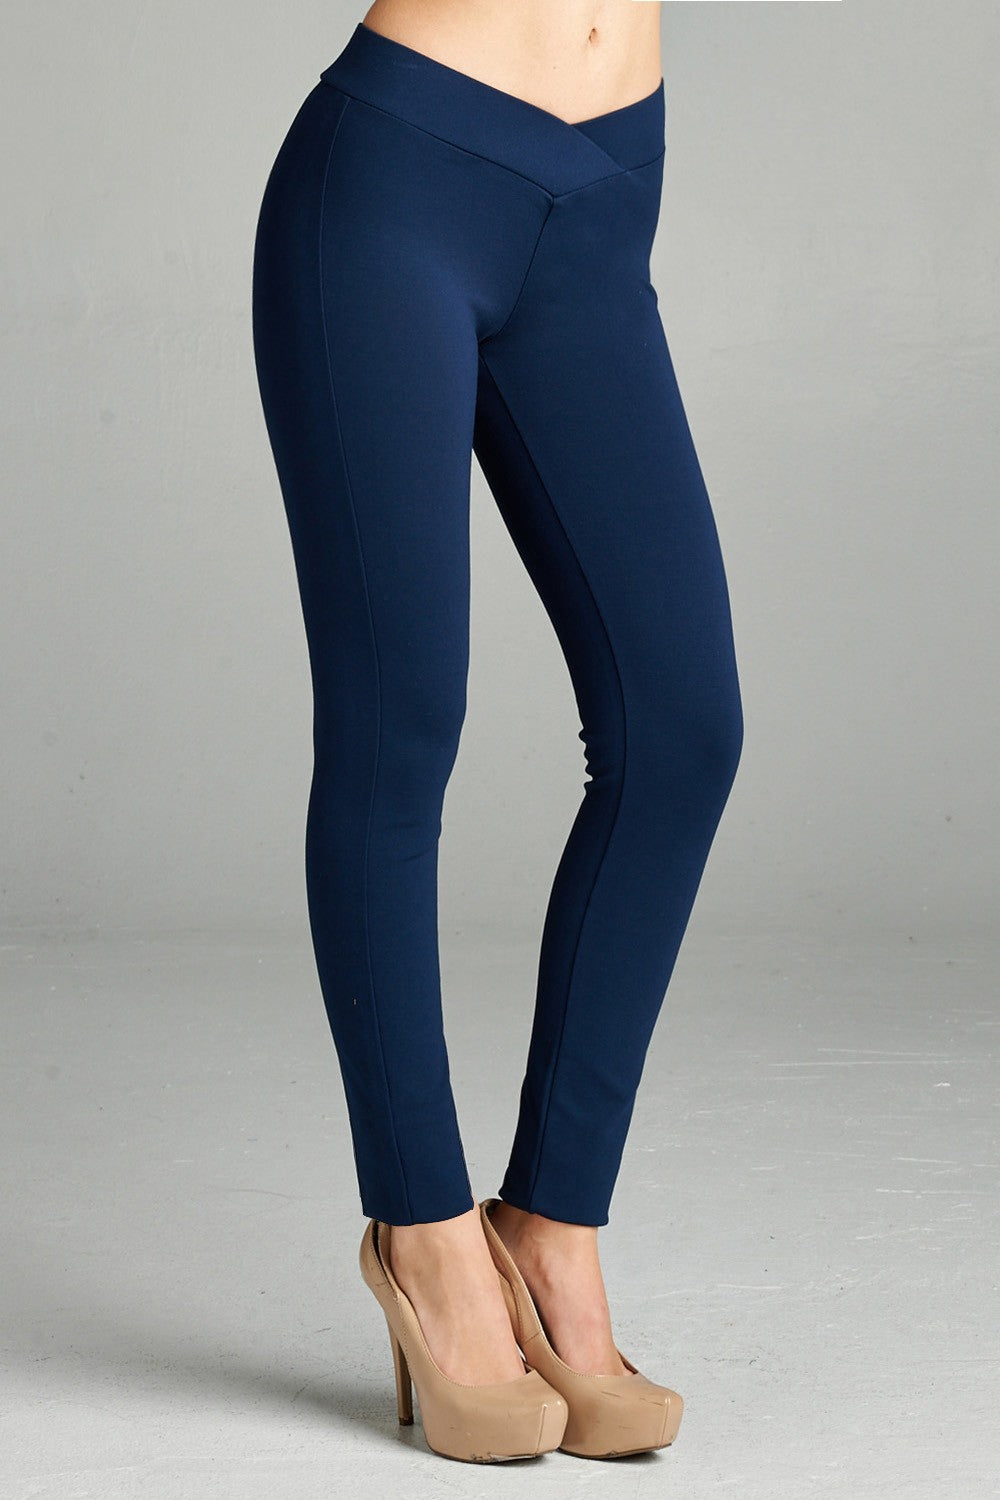 Seagull Shaped Pants - Navy - CeCe Fashion Boutique